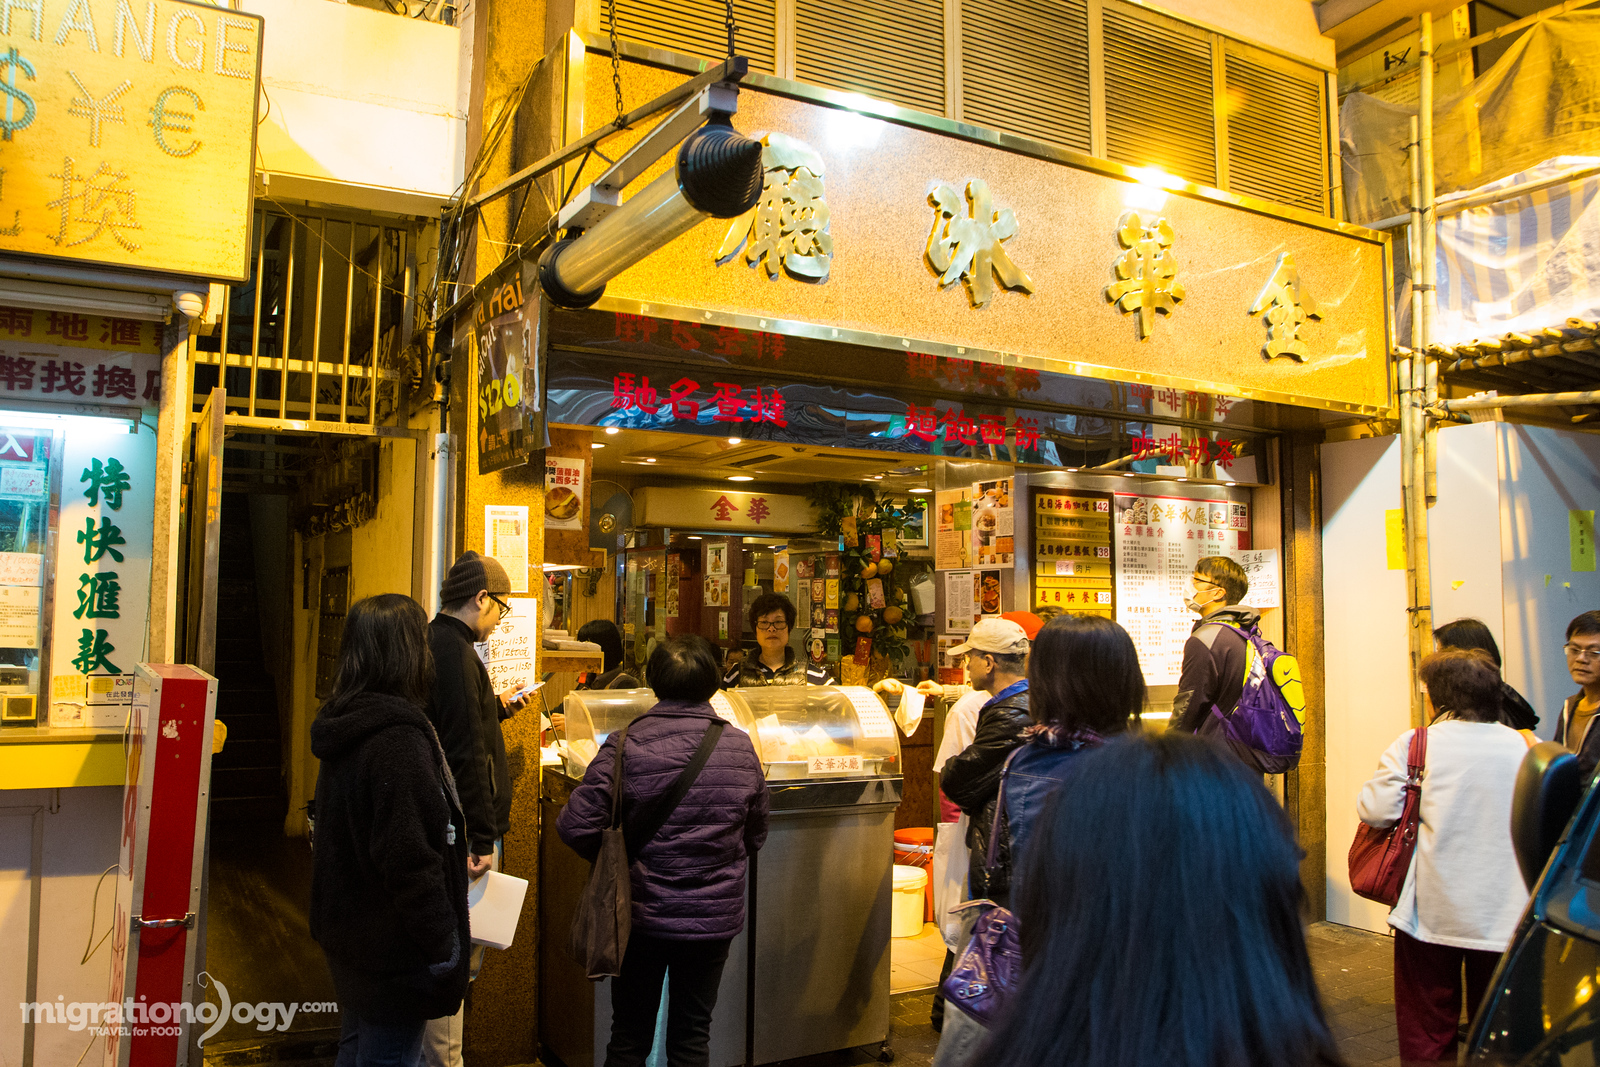 Kam Wah Cafe & Bakery (金華冰廳)